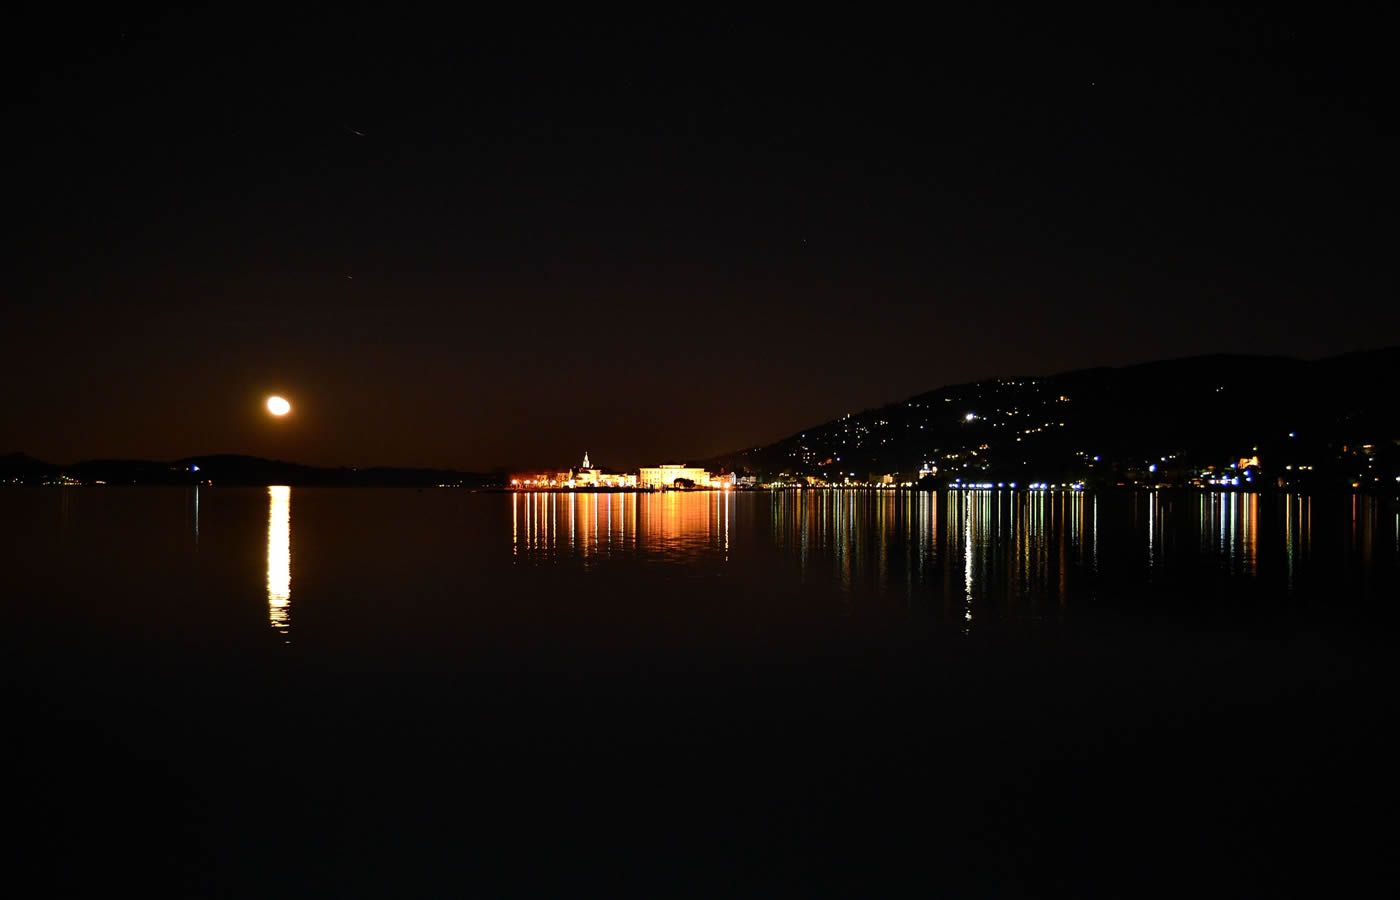 The Borromean Islands from Baveno square in a full moon night